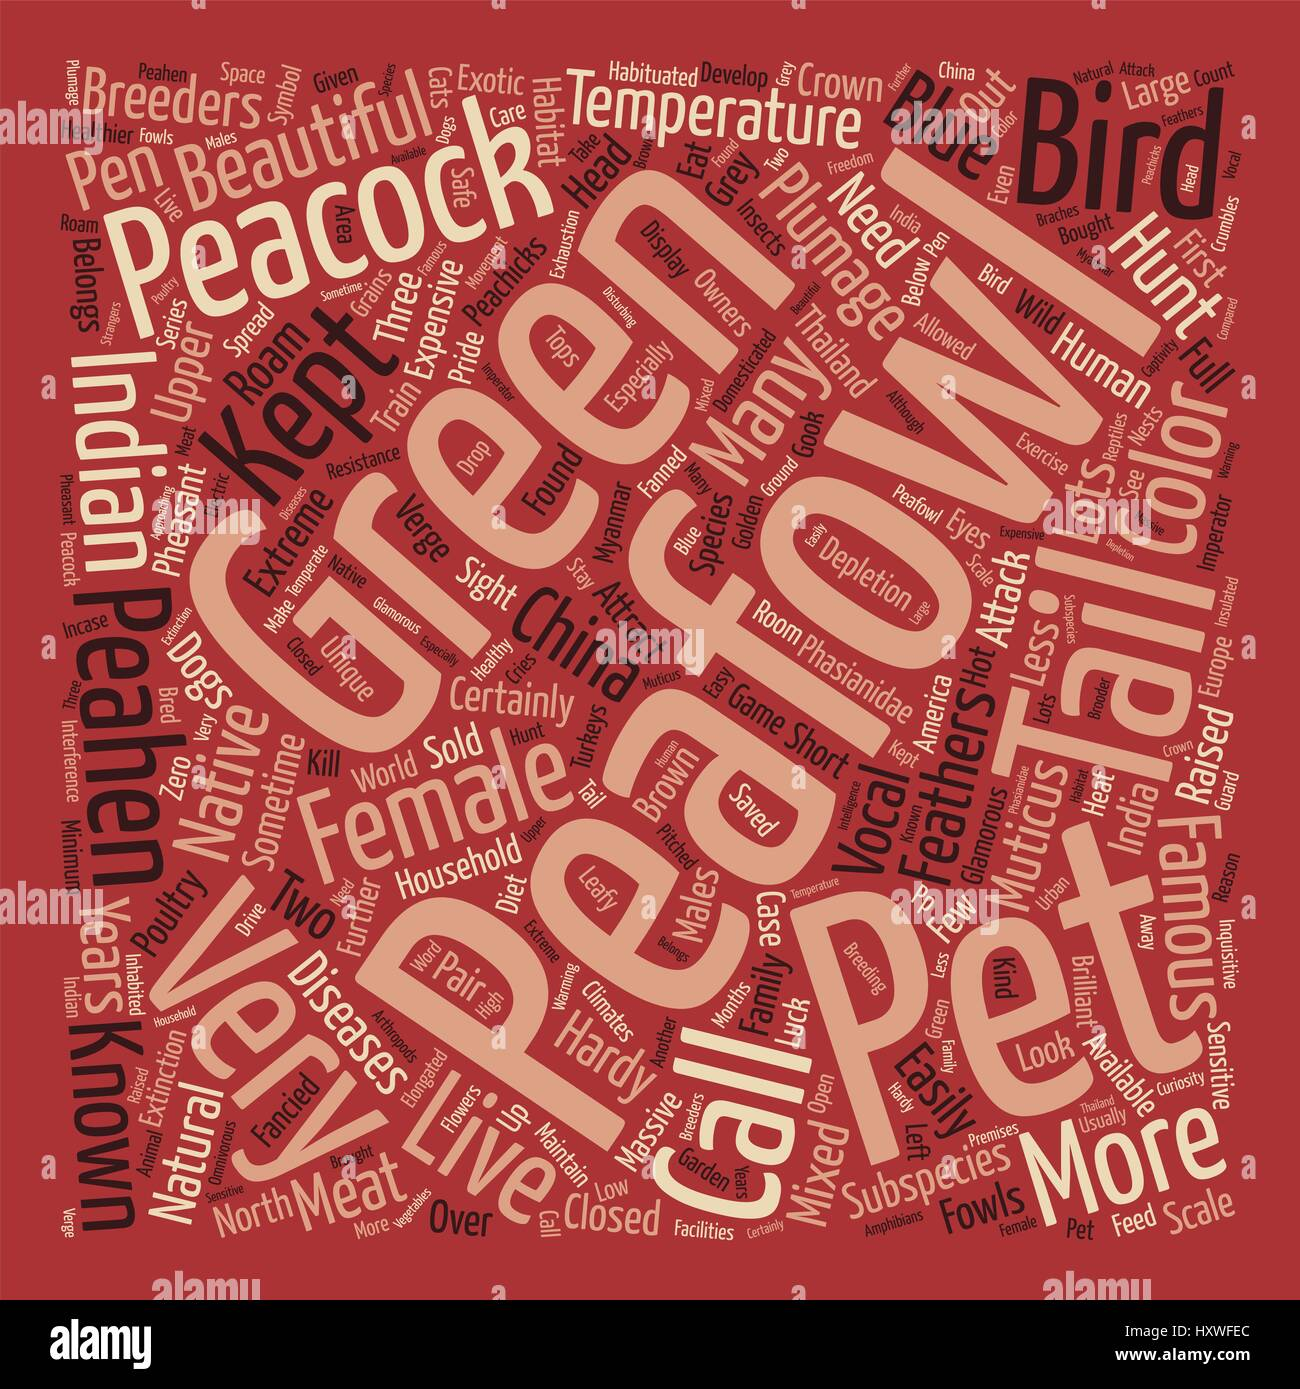 Peafowl text background word cloud concept - Stock Vector